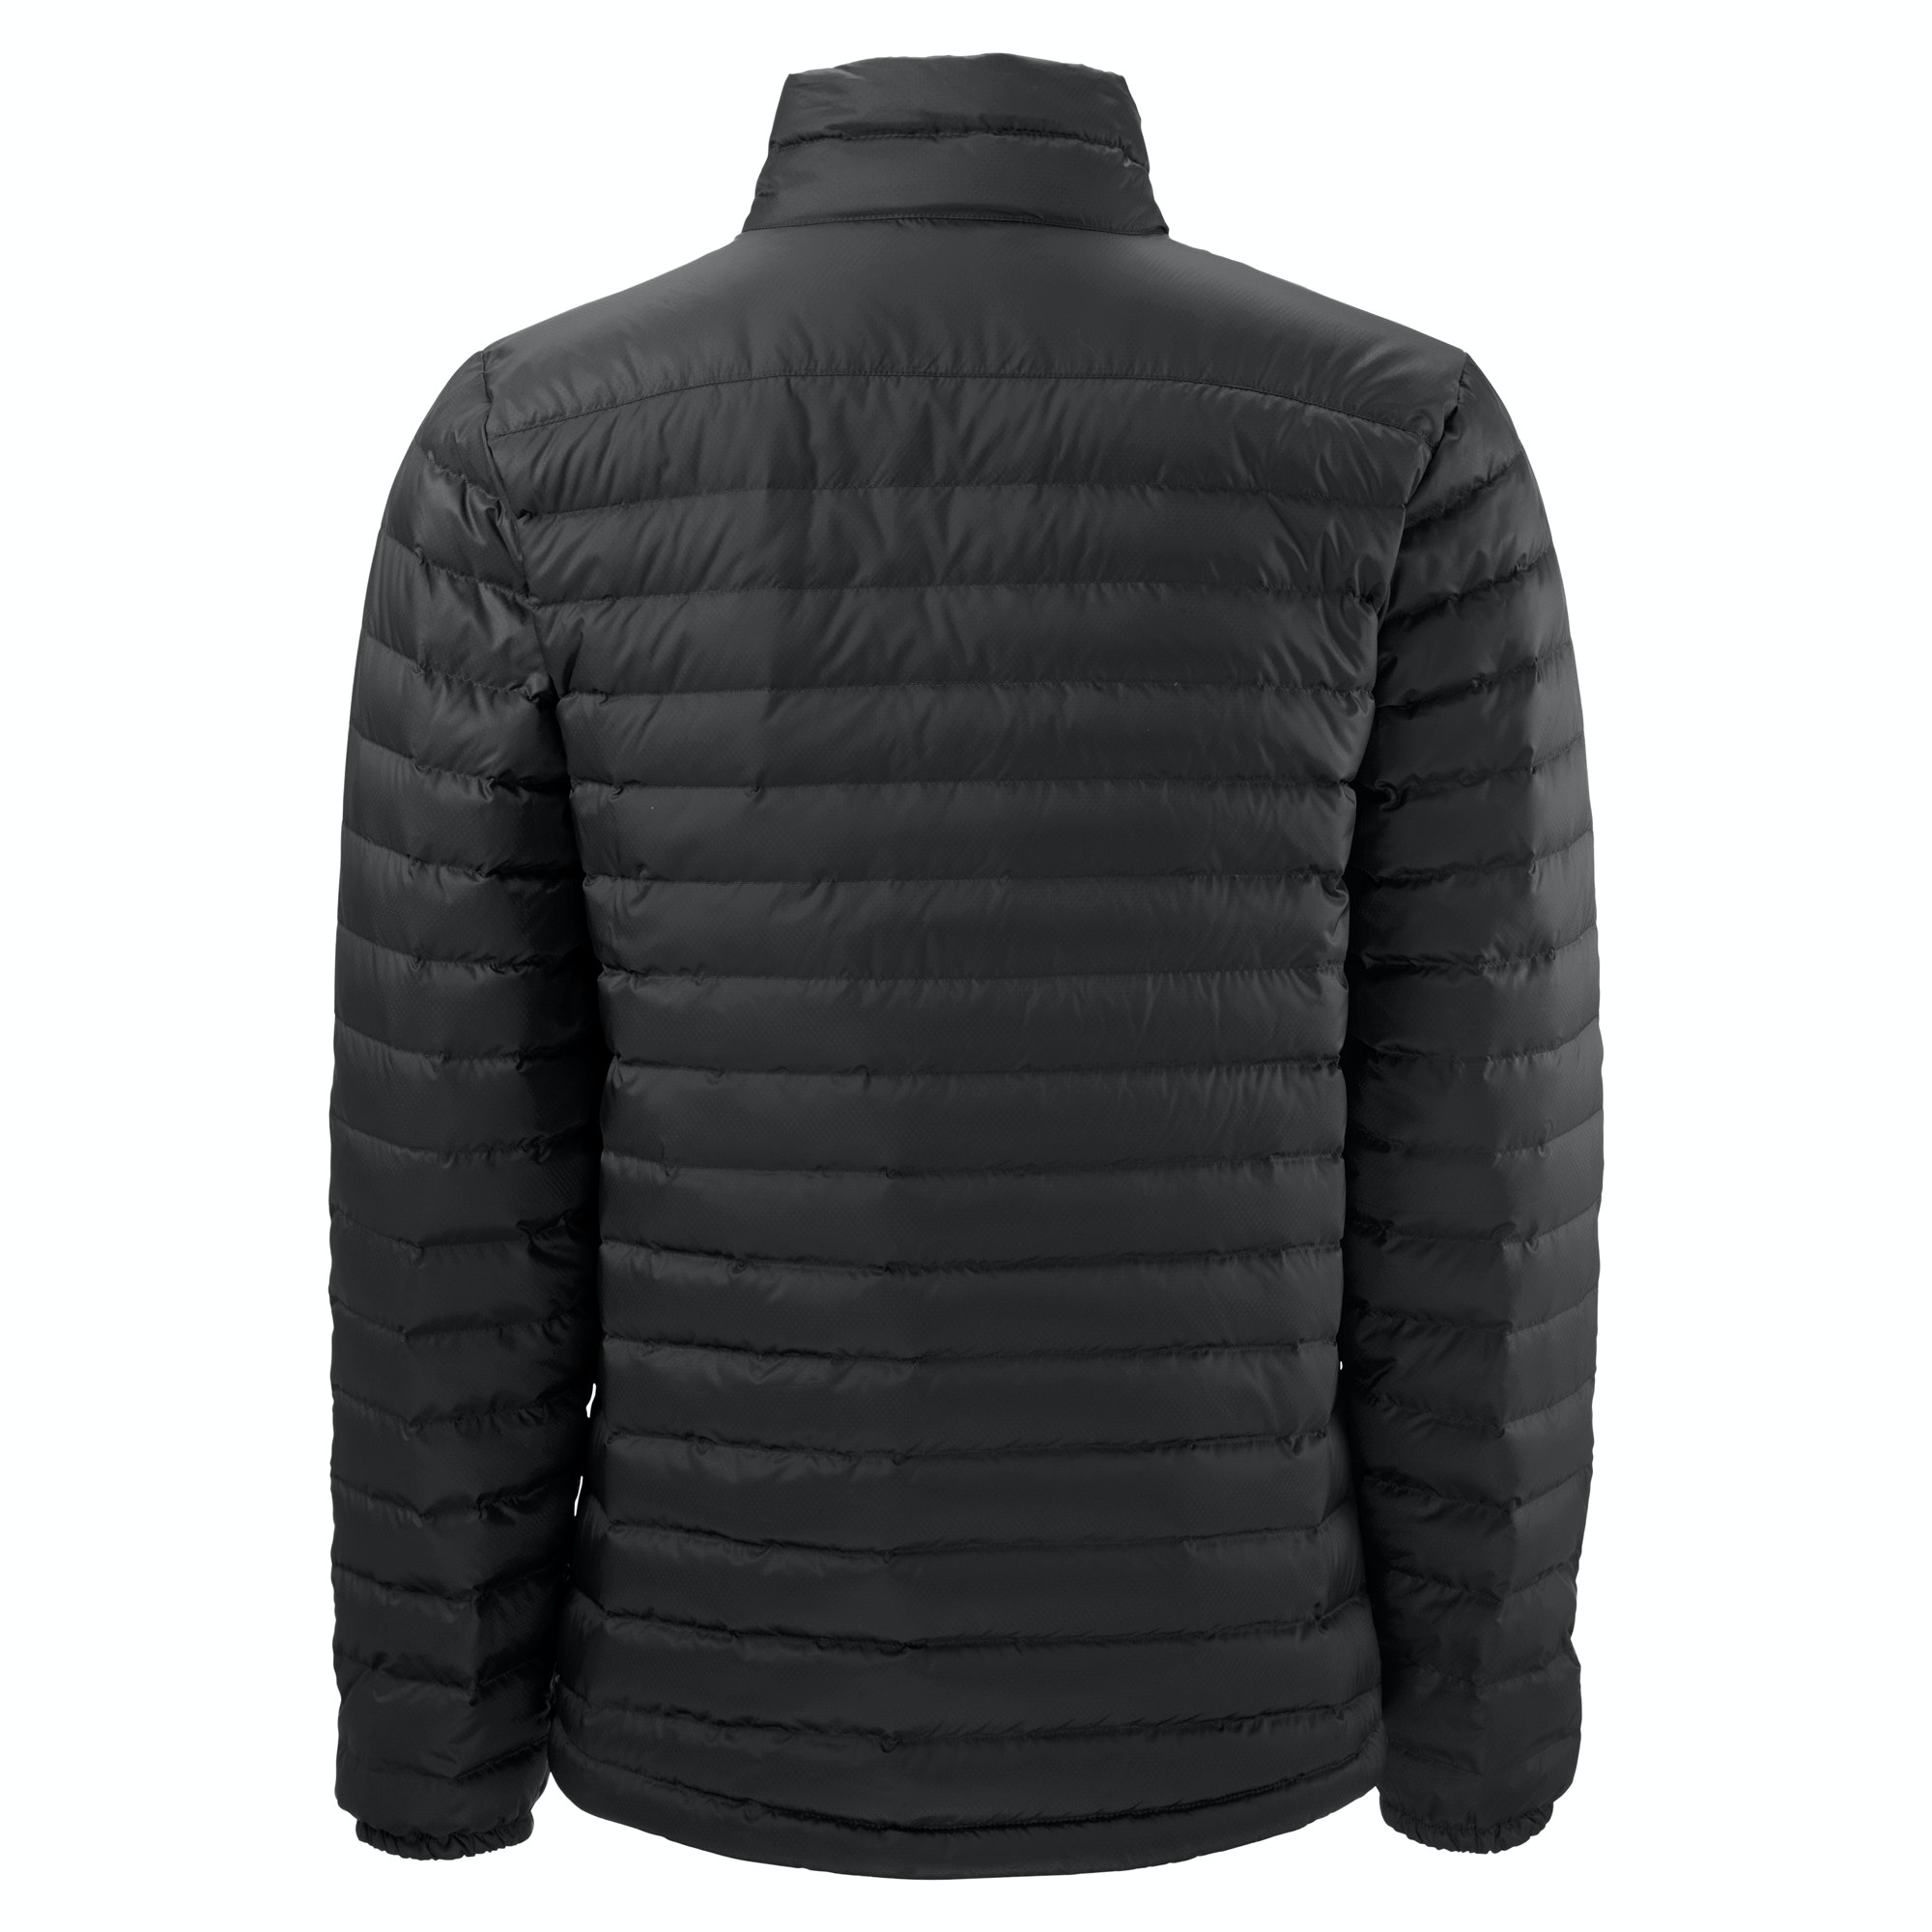 Heli Men's Light Weight Down Jacket v2 - Black